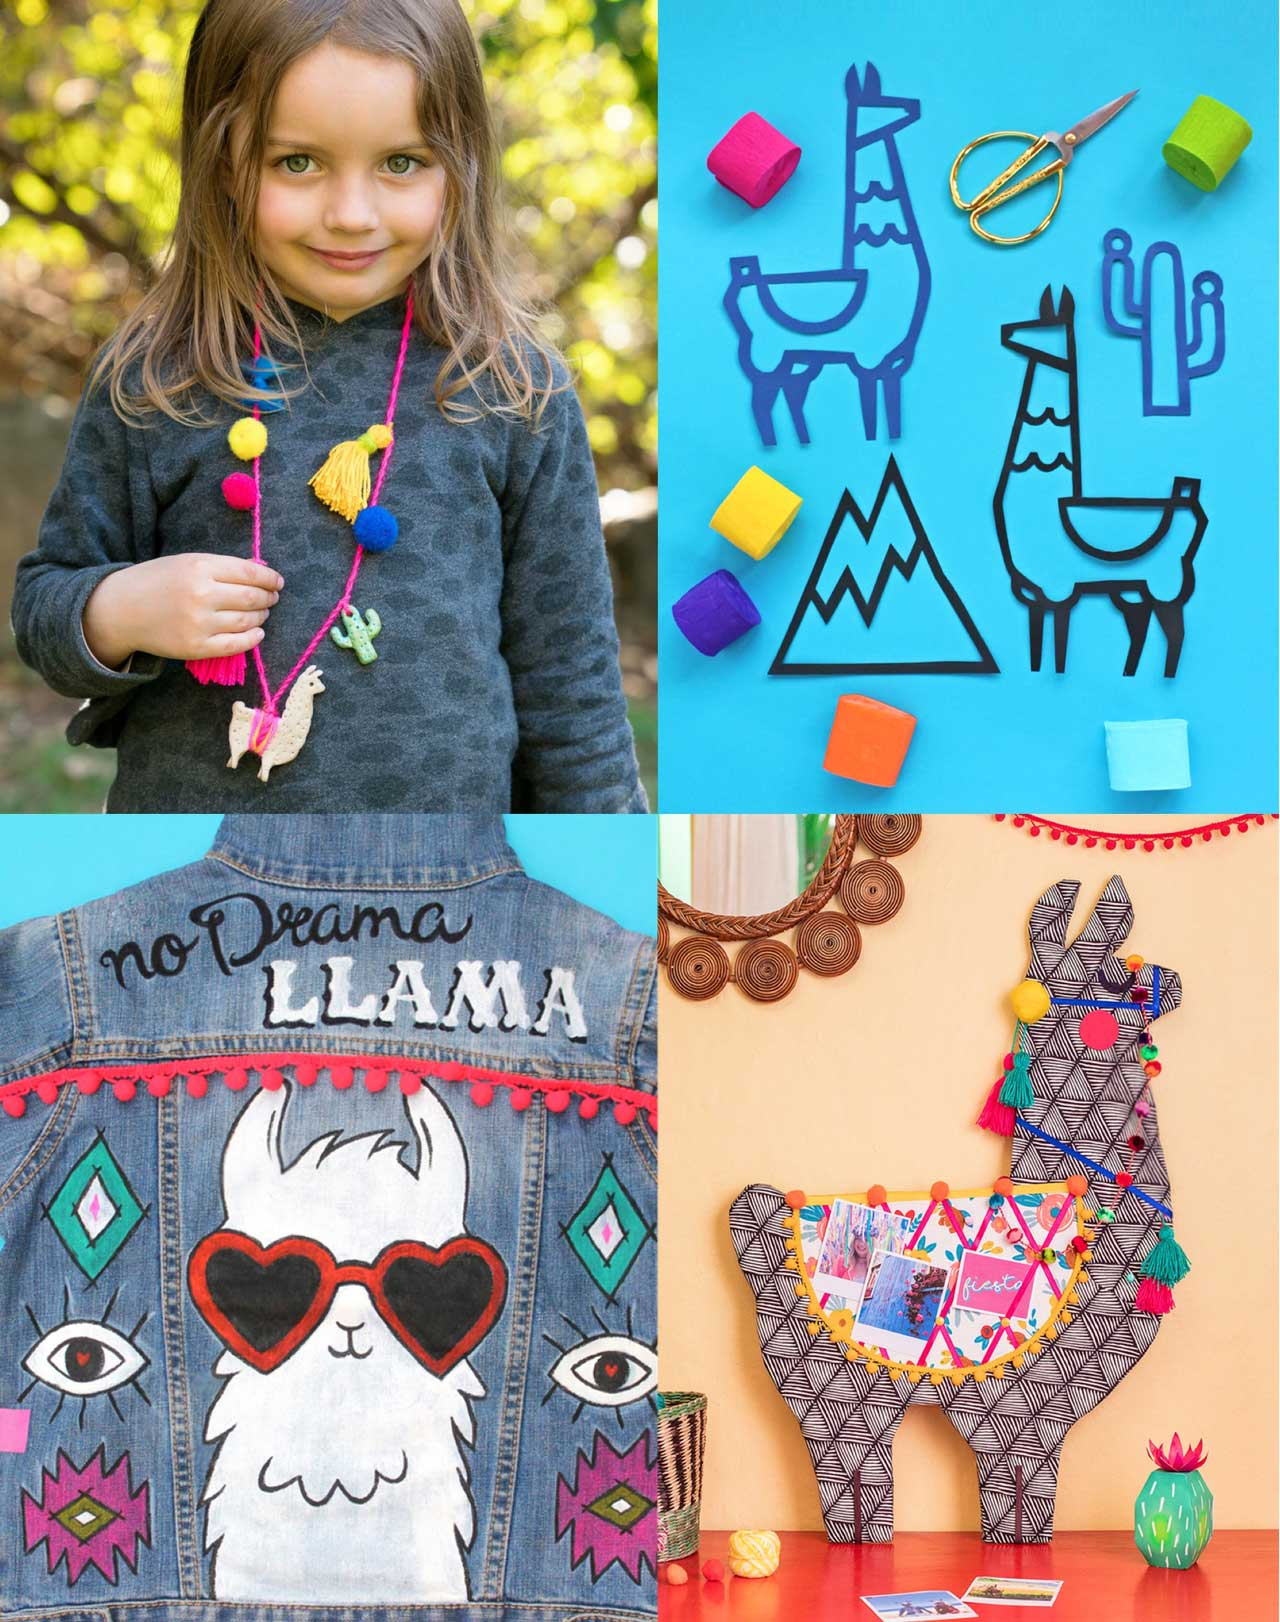 Make your own llama crafts with our fantastic 'Llama Crafts' book